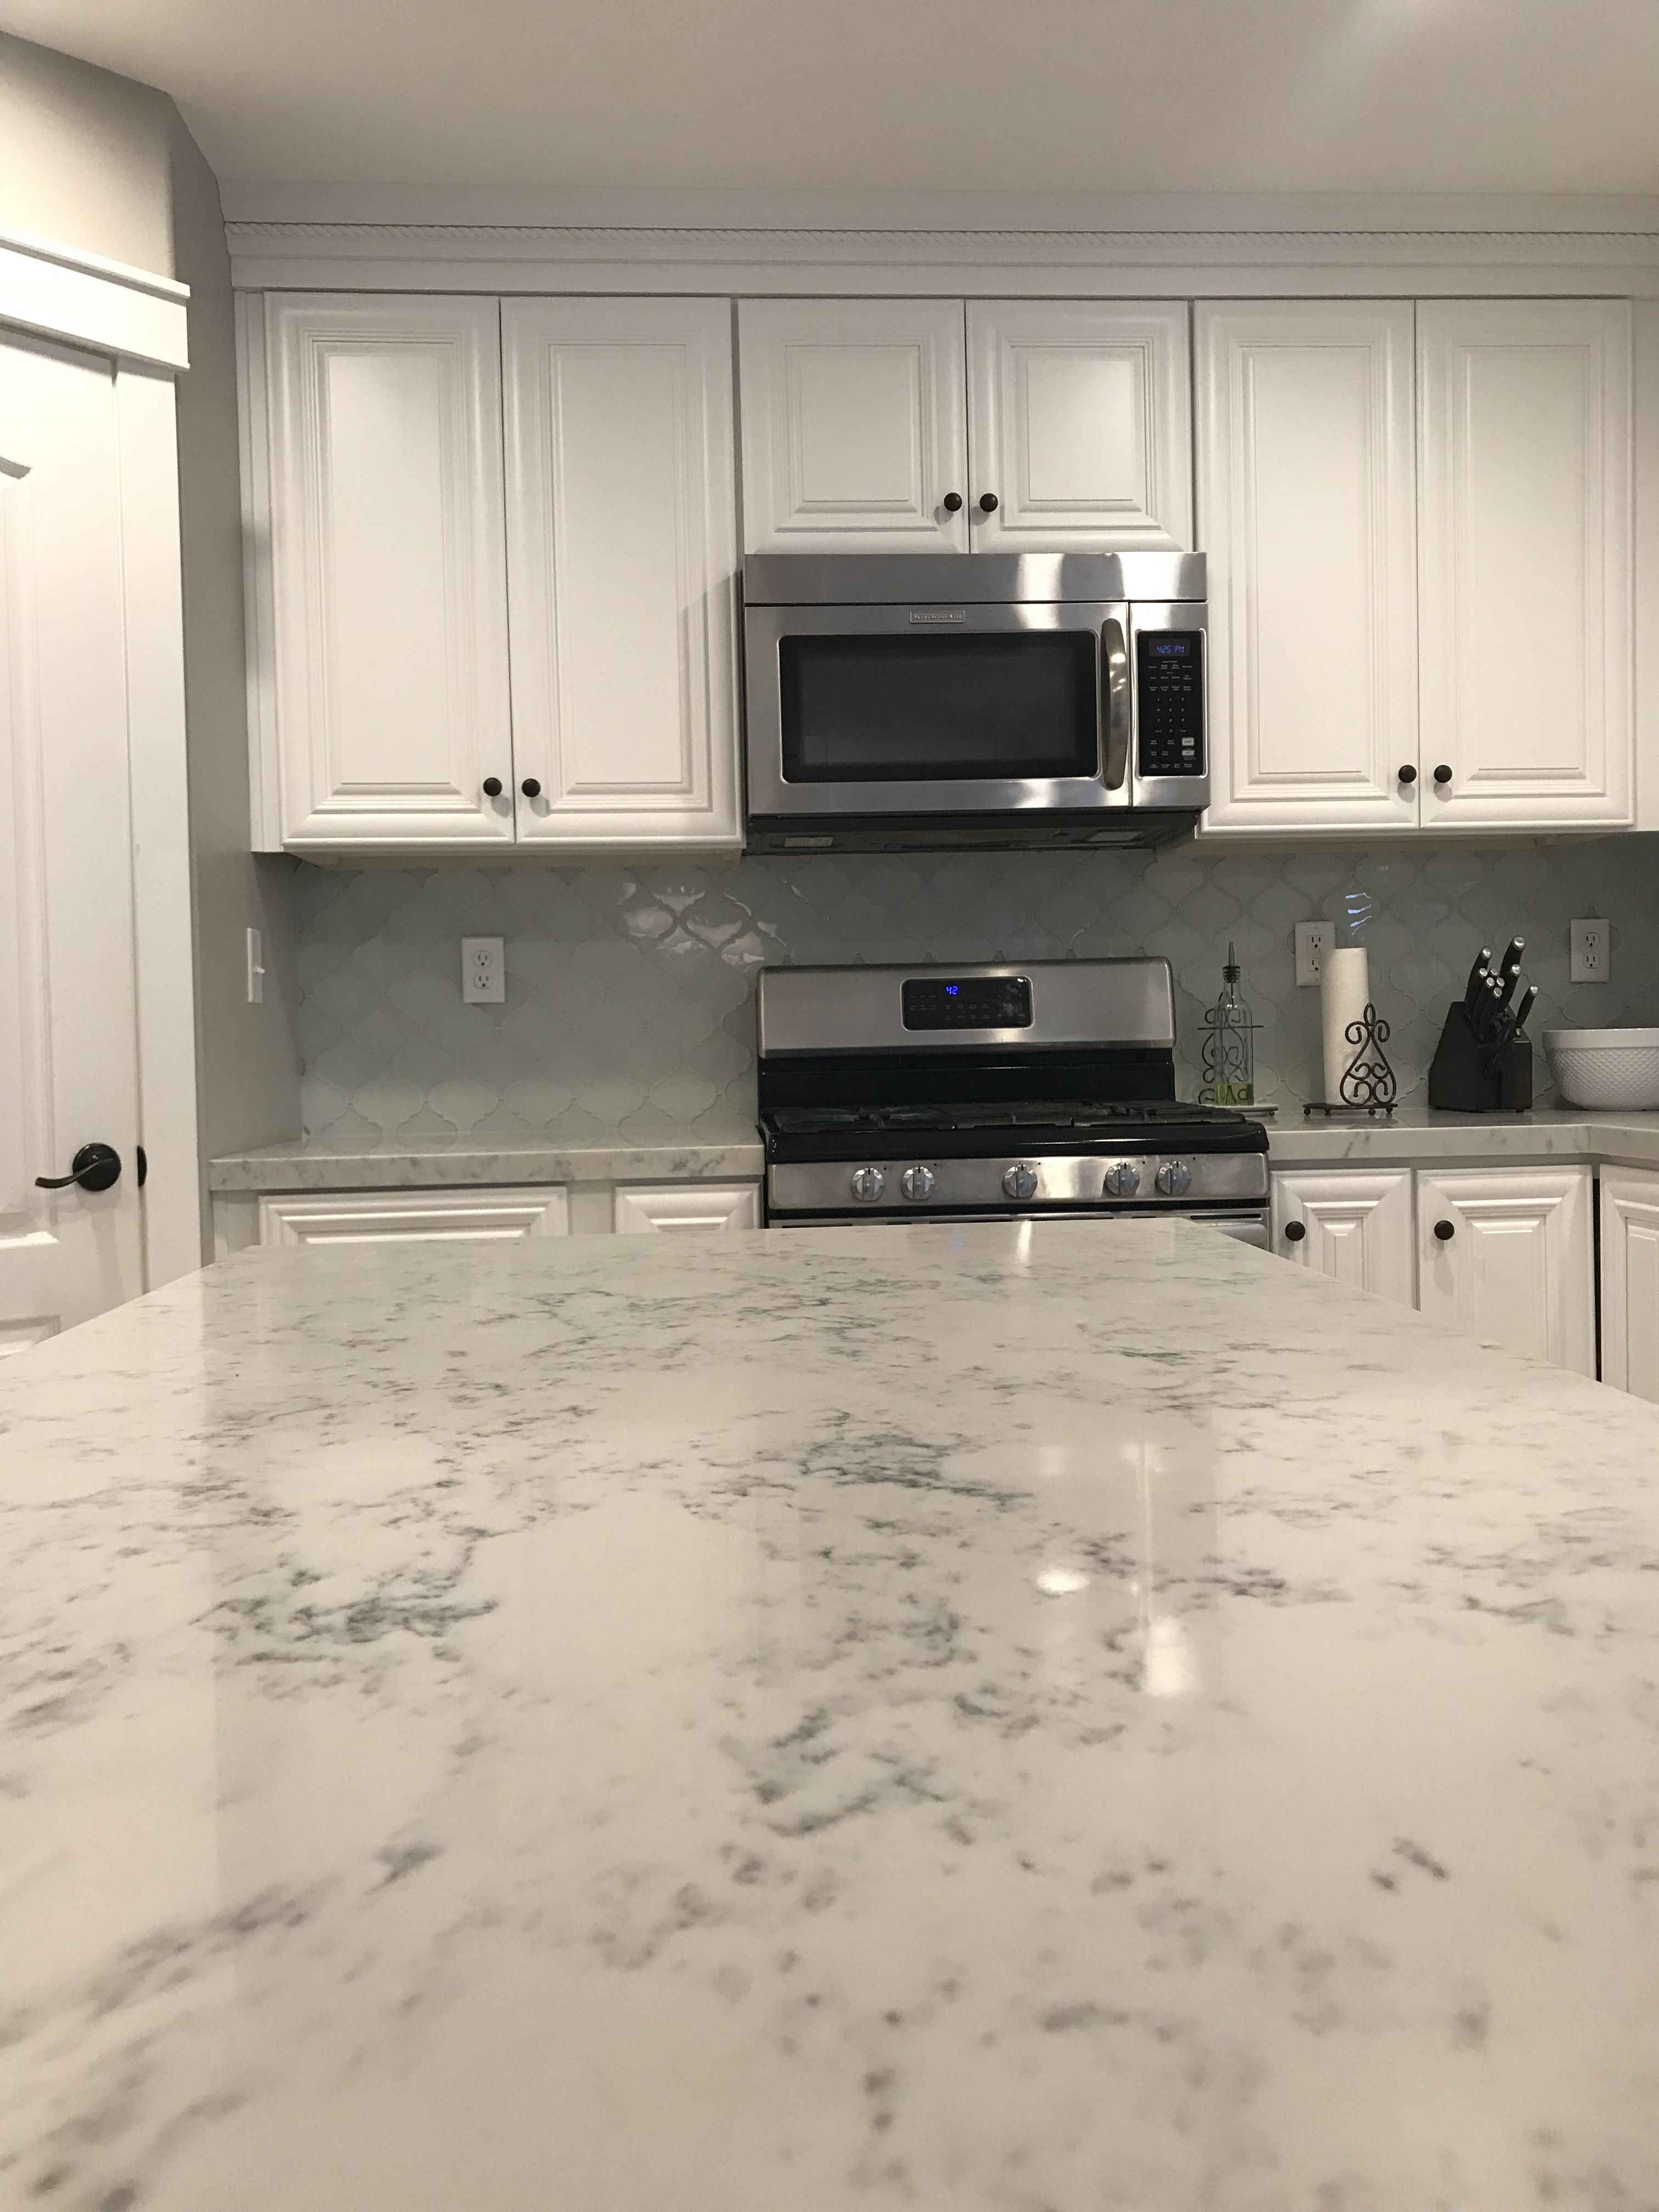 Carrara quartzite white cabinets elysium arabesque glass tiles